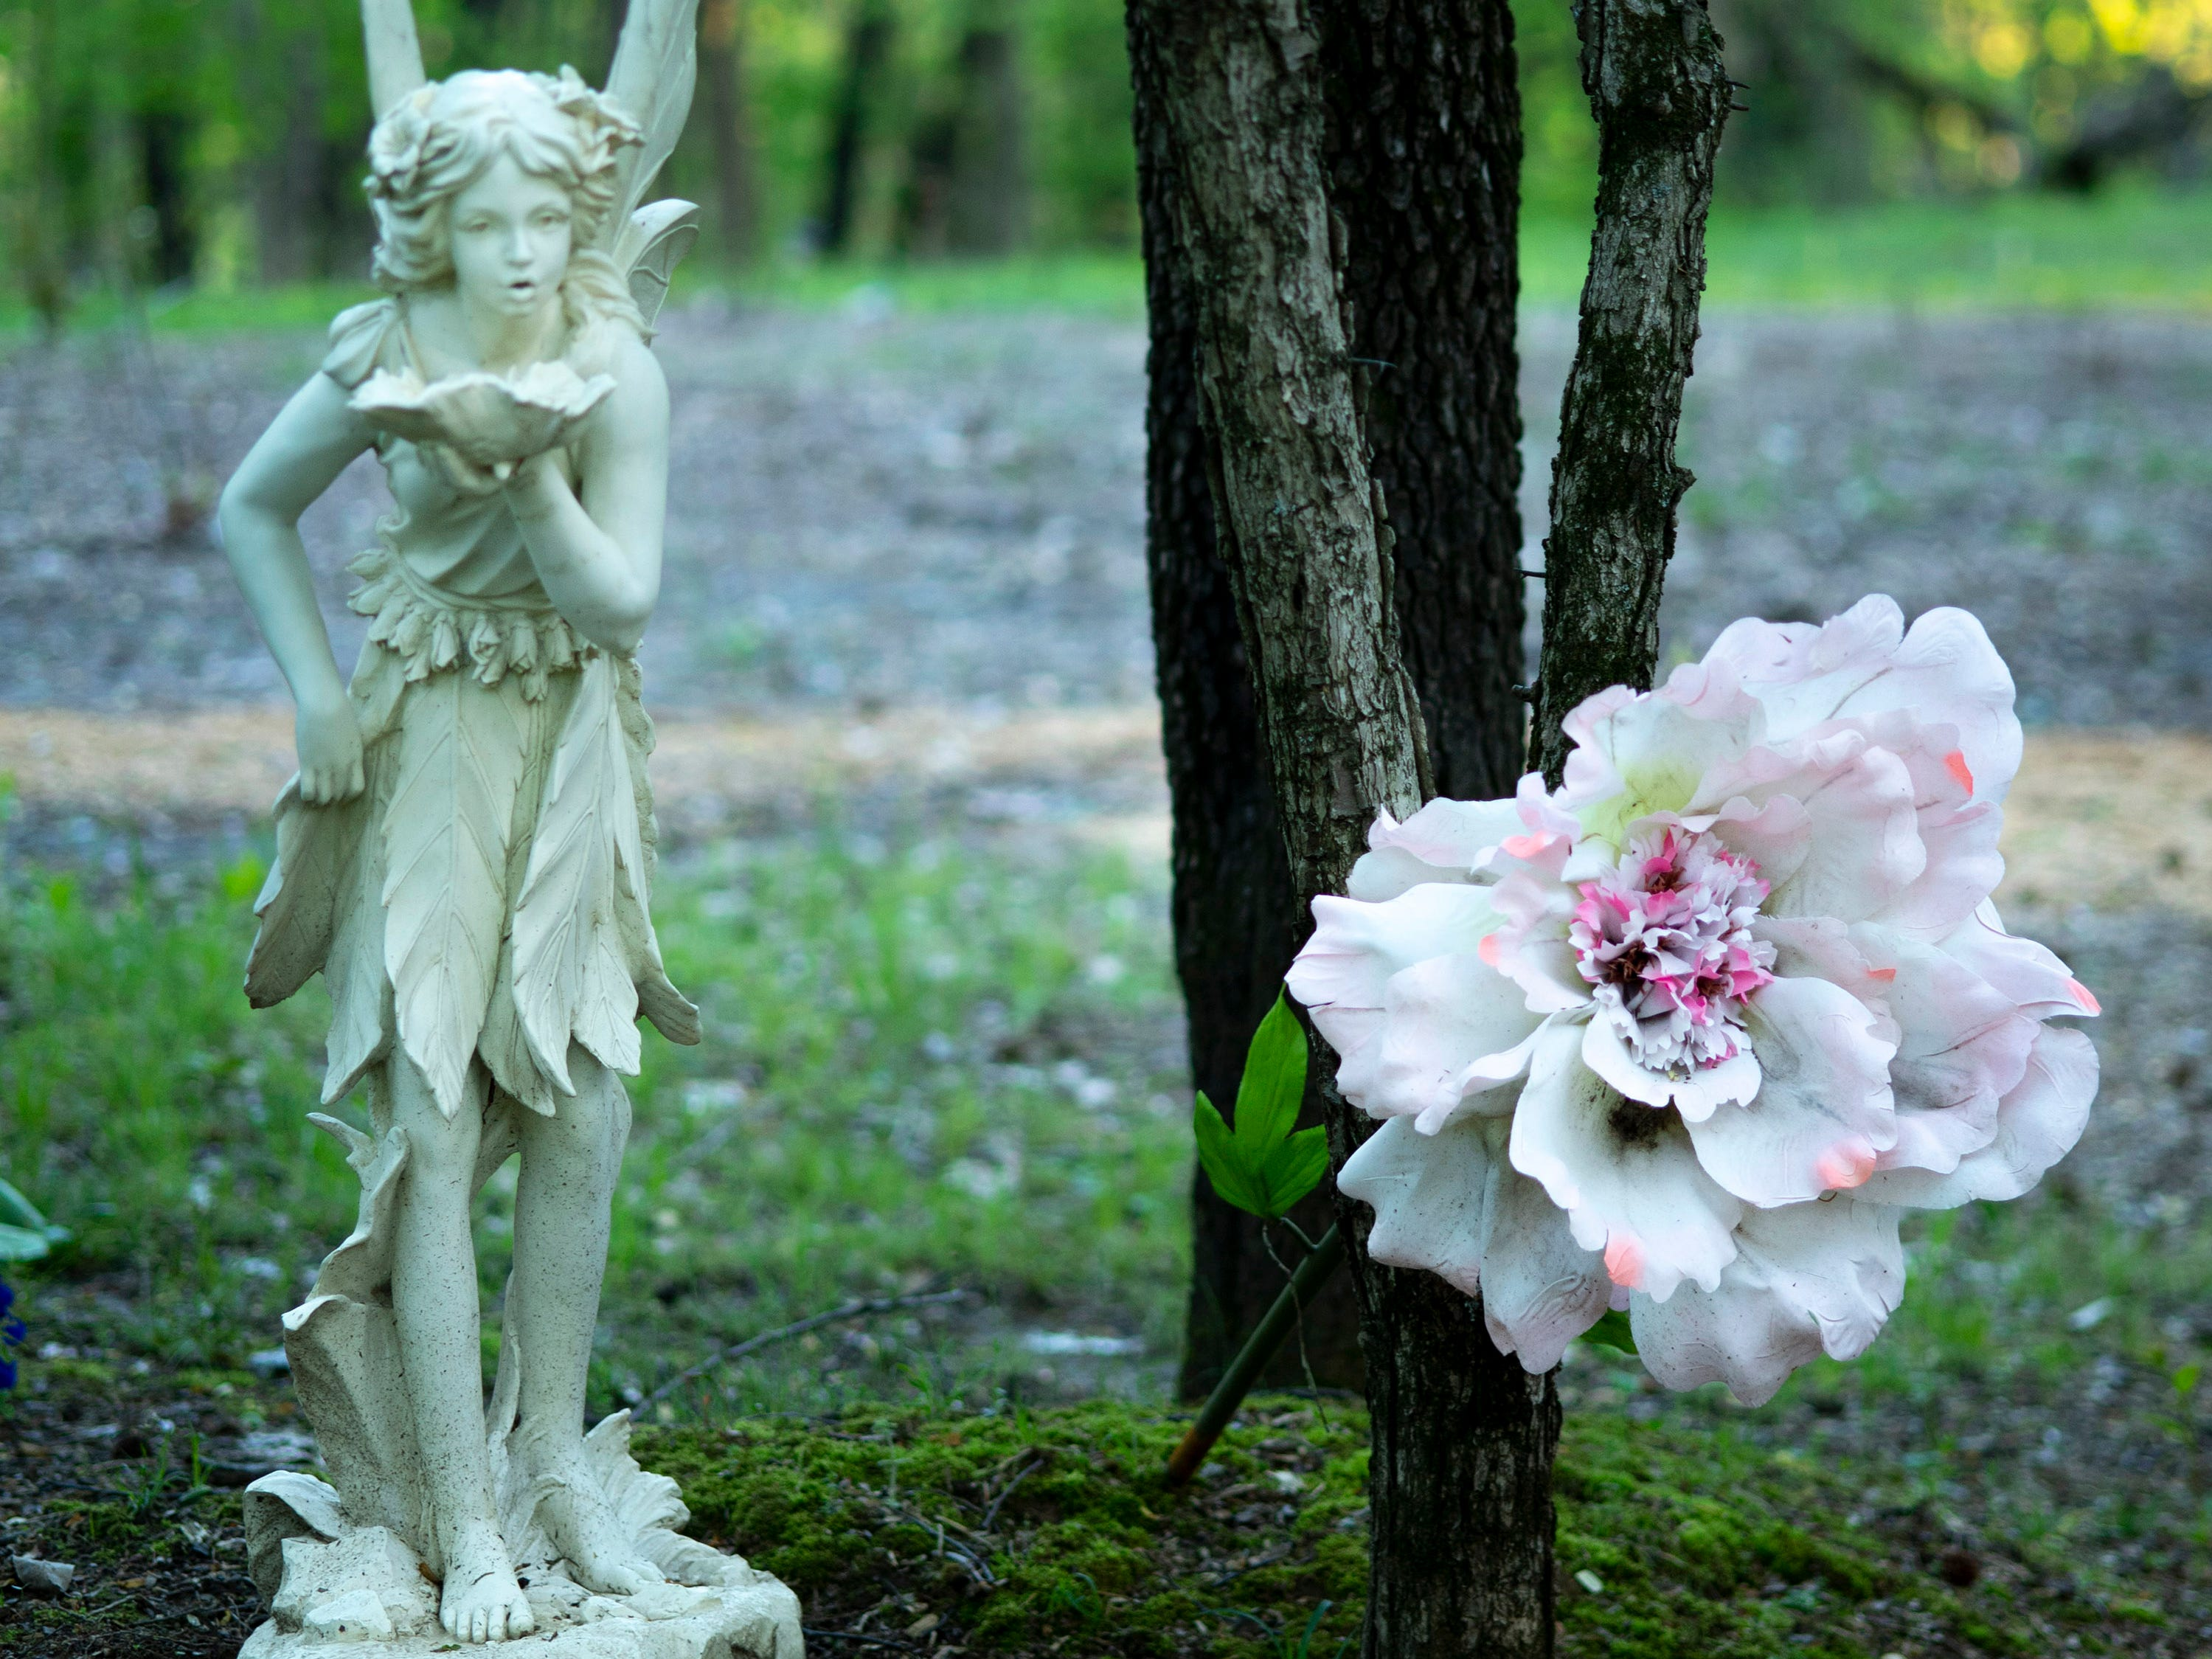 A fairy and an over-sized azalea decoration at the Azalea Path Arboretum and Botanical Gardens in Pike County, Ind., Friday, April 26, 2019. The facility was started by Beverly Knight in 1979 on 15 acres and has grown to more than 60 acres and has about 500 varieties of the flower.